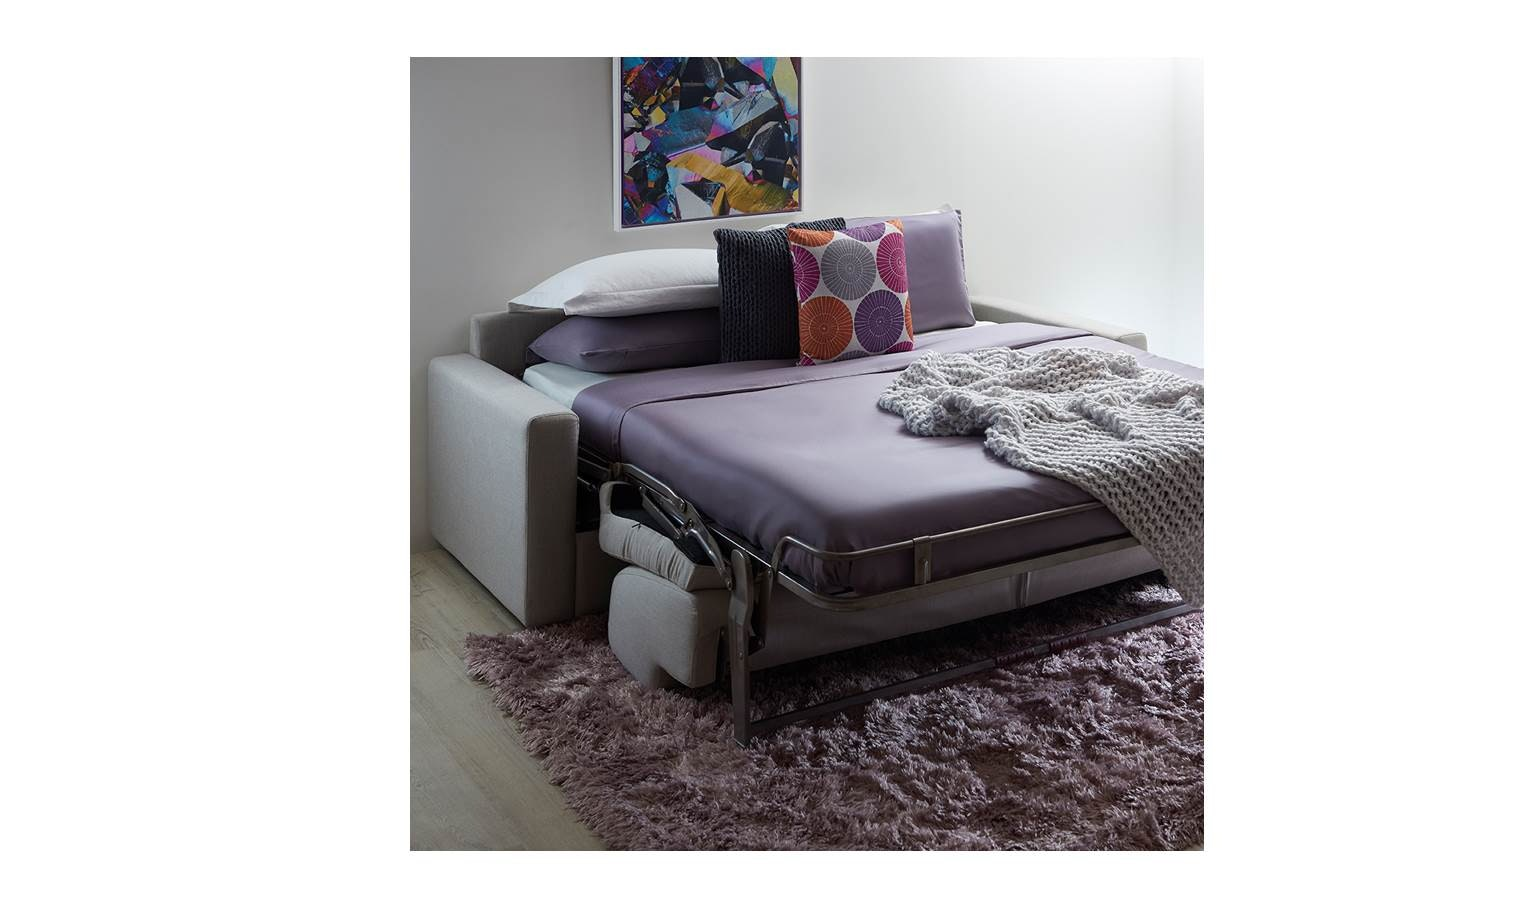 Space Orzo Sofa Bed Queen Size